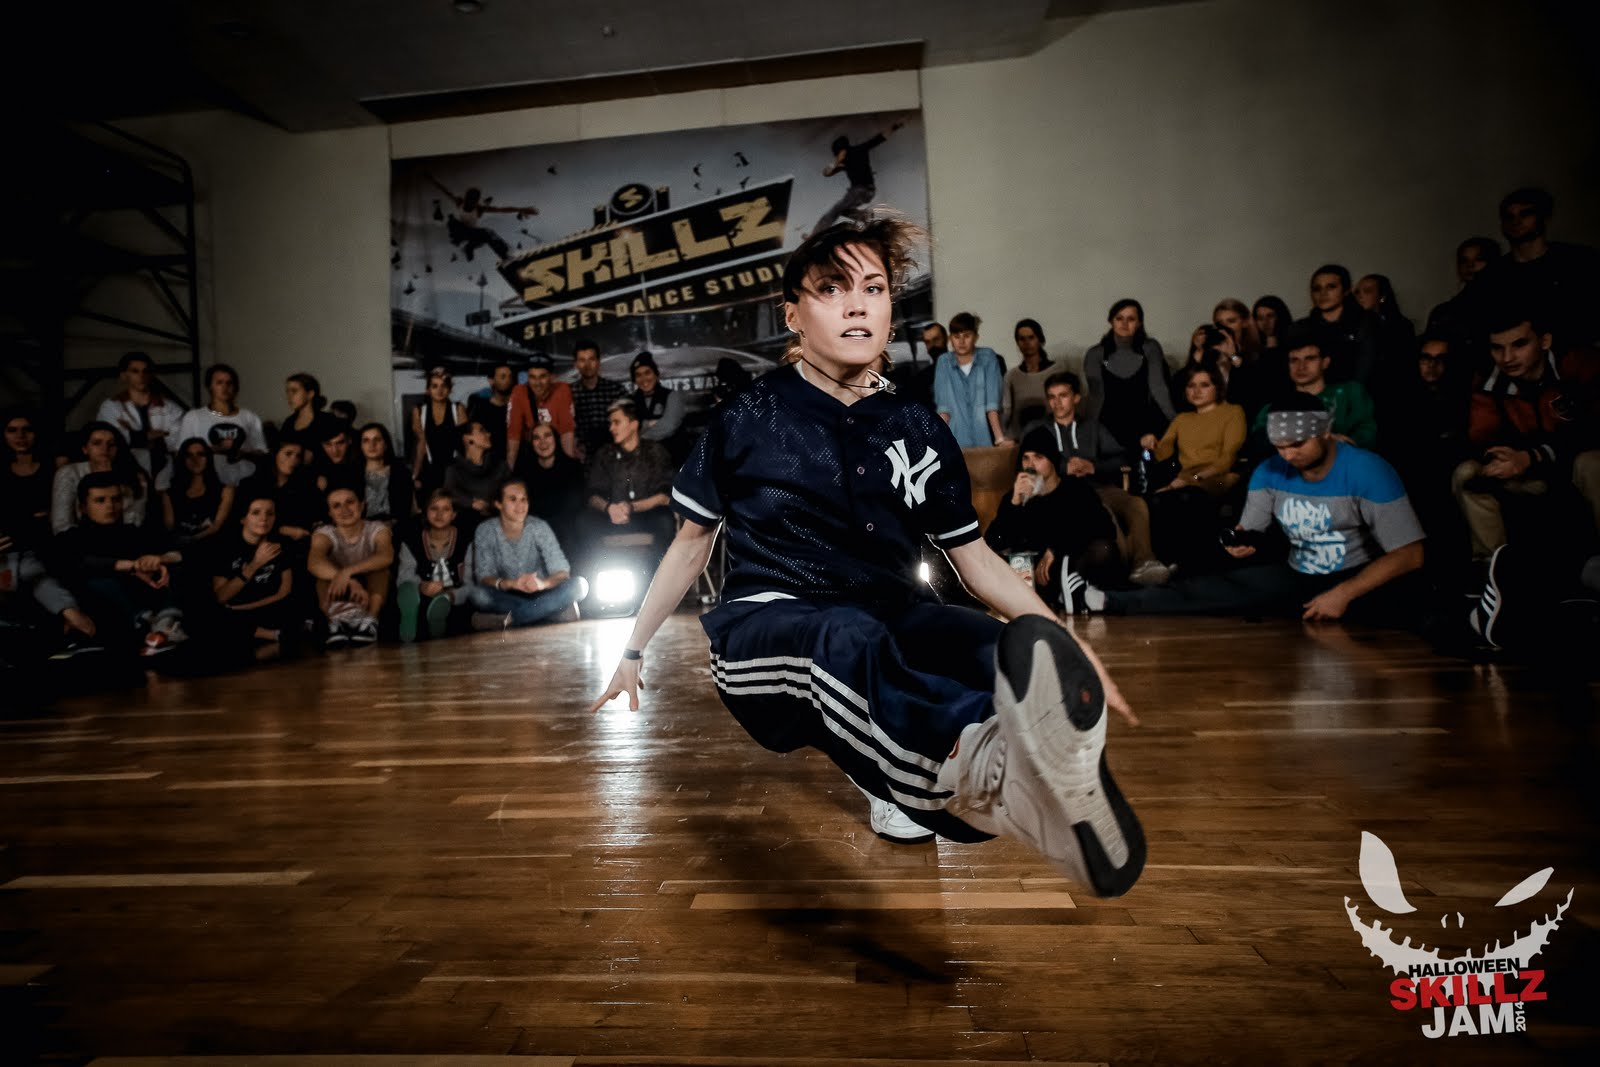 SKILLZ Halloween Jam Battles - a_MG_2289.jpg